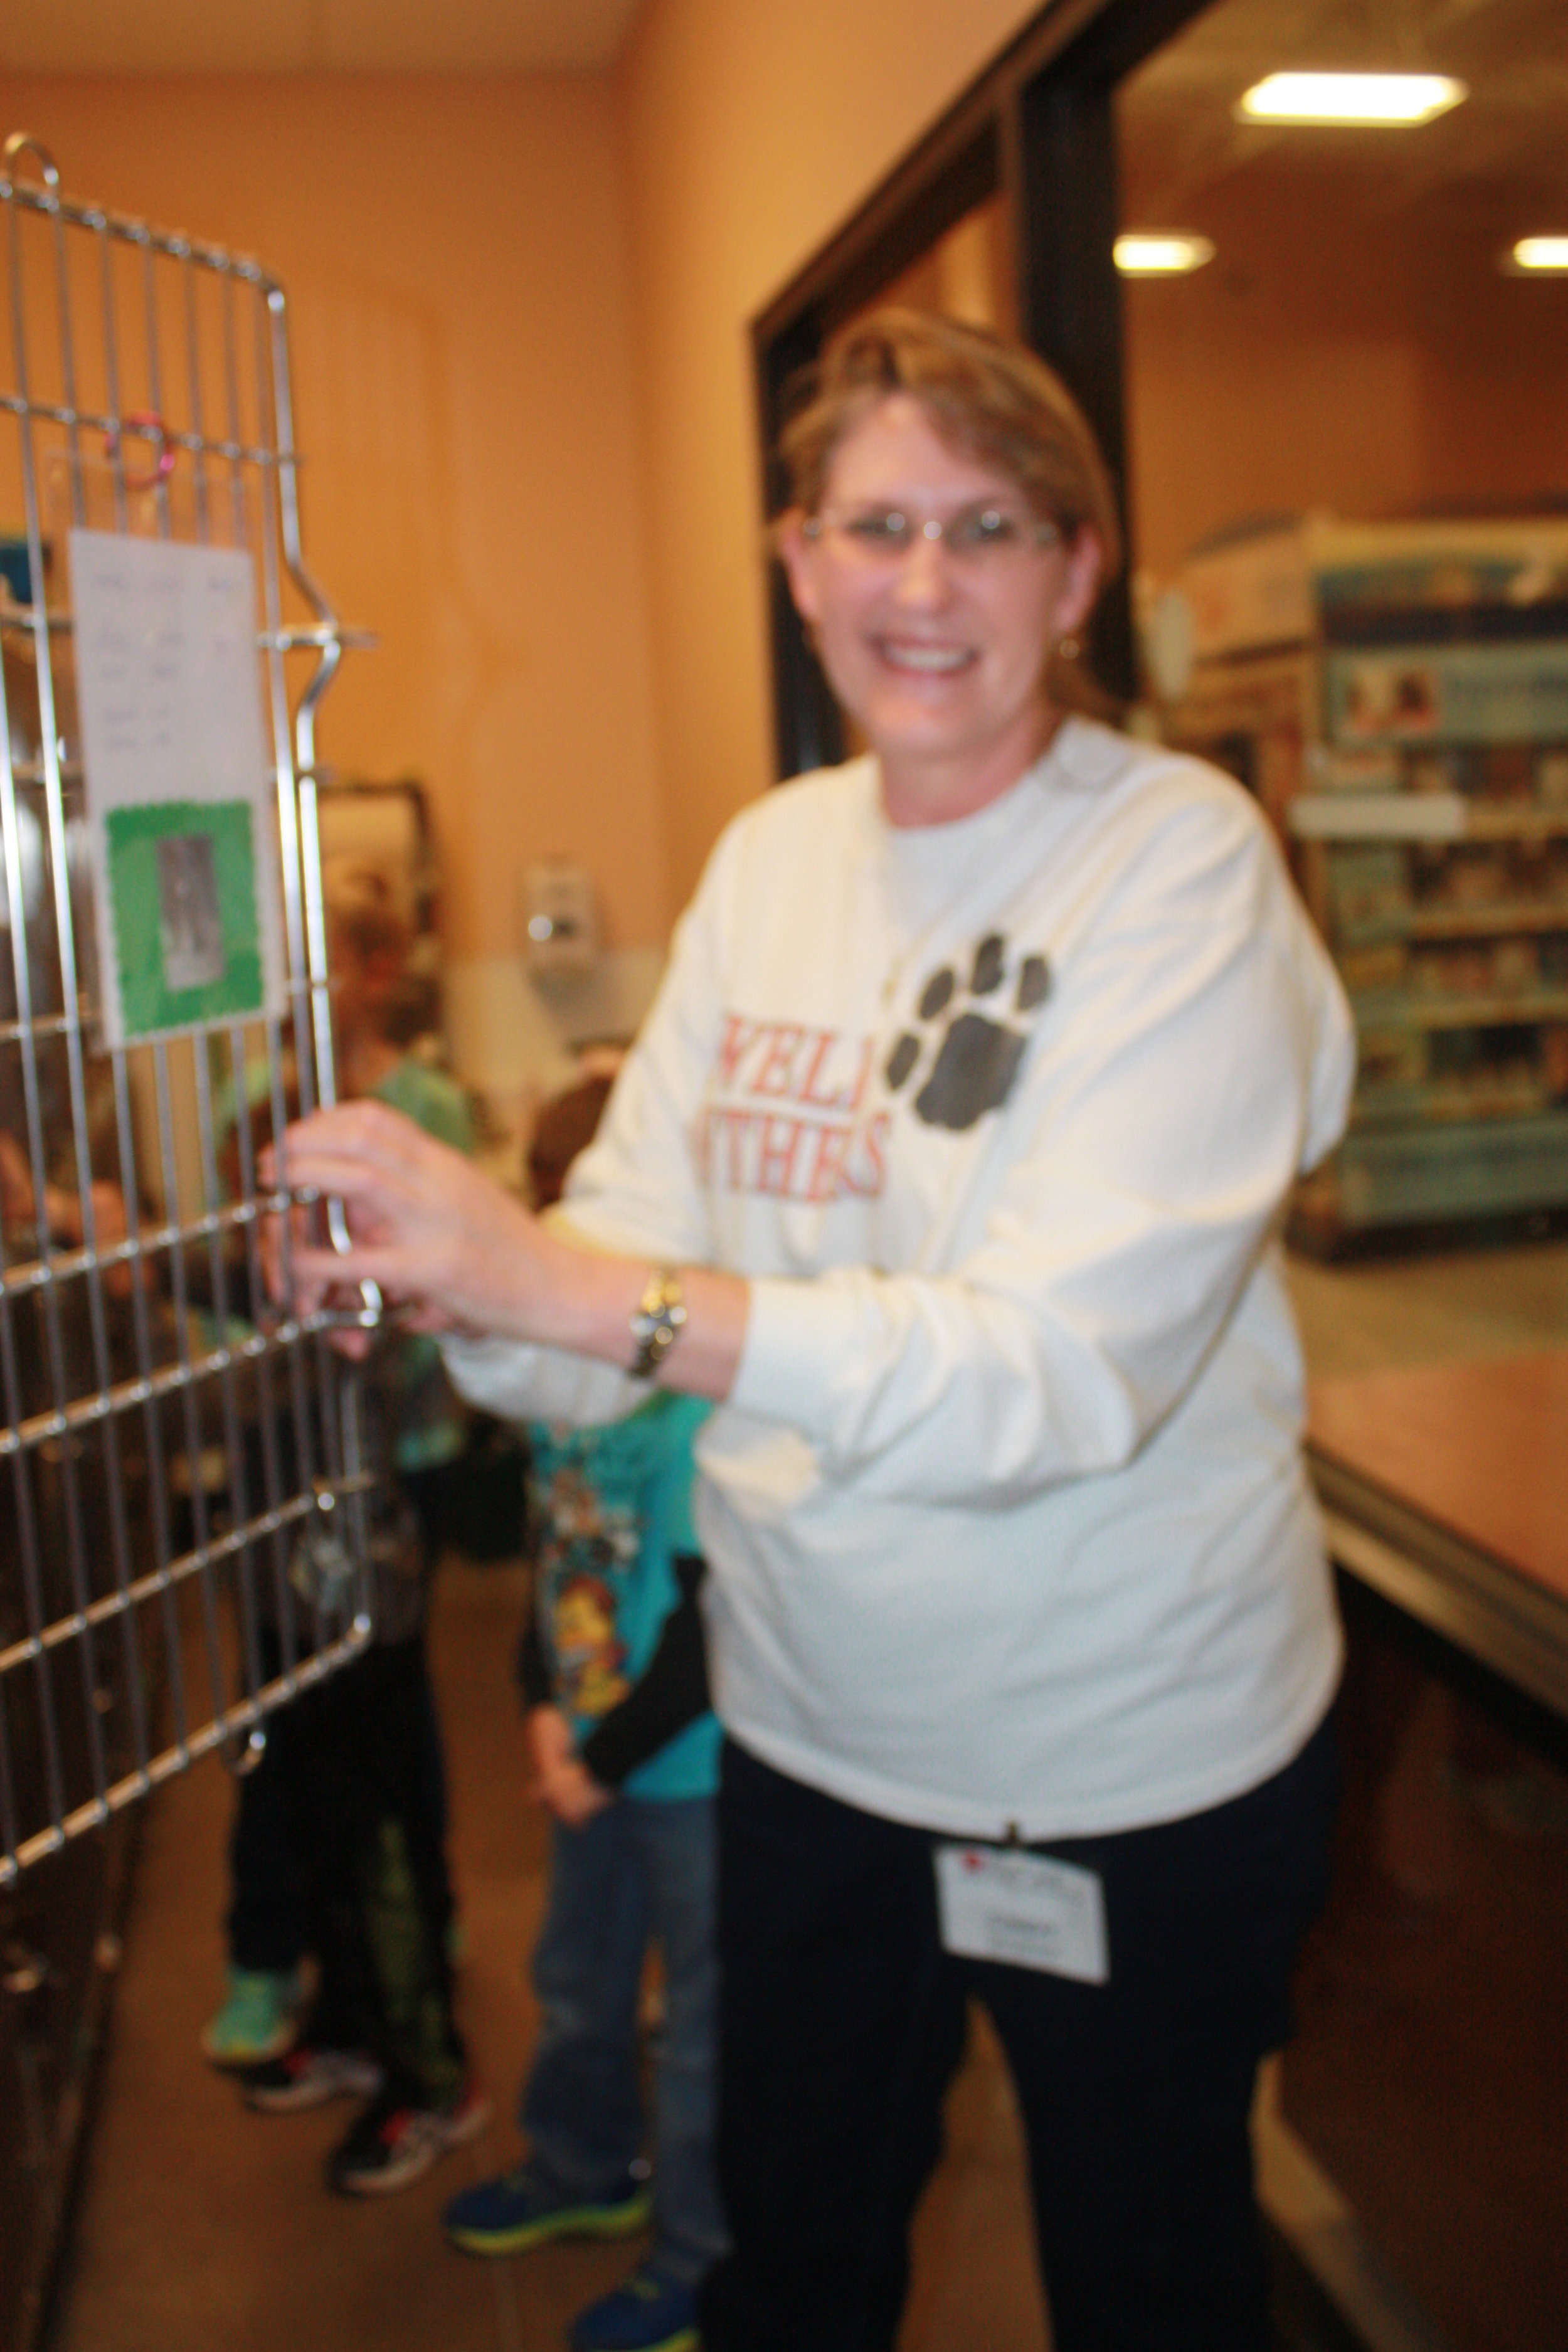 Wendy, working hard to get our cats adopted at PetSmart